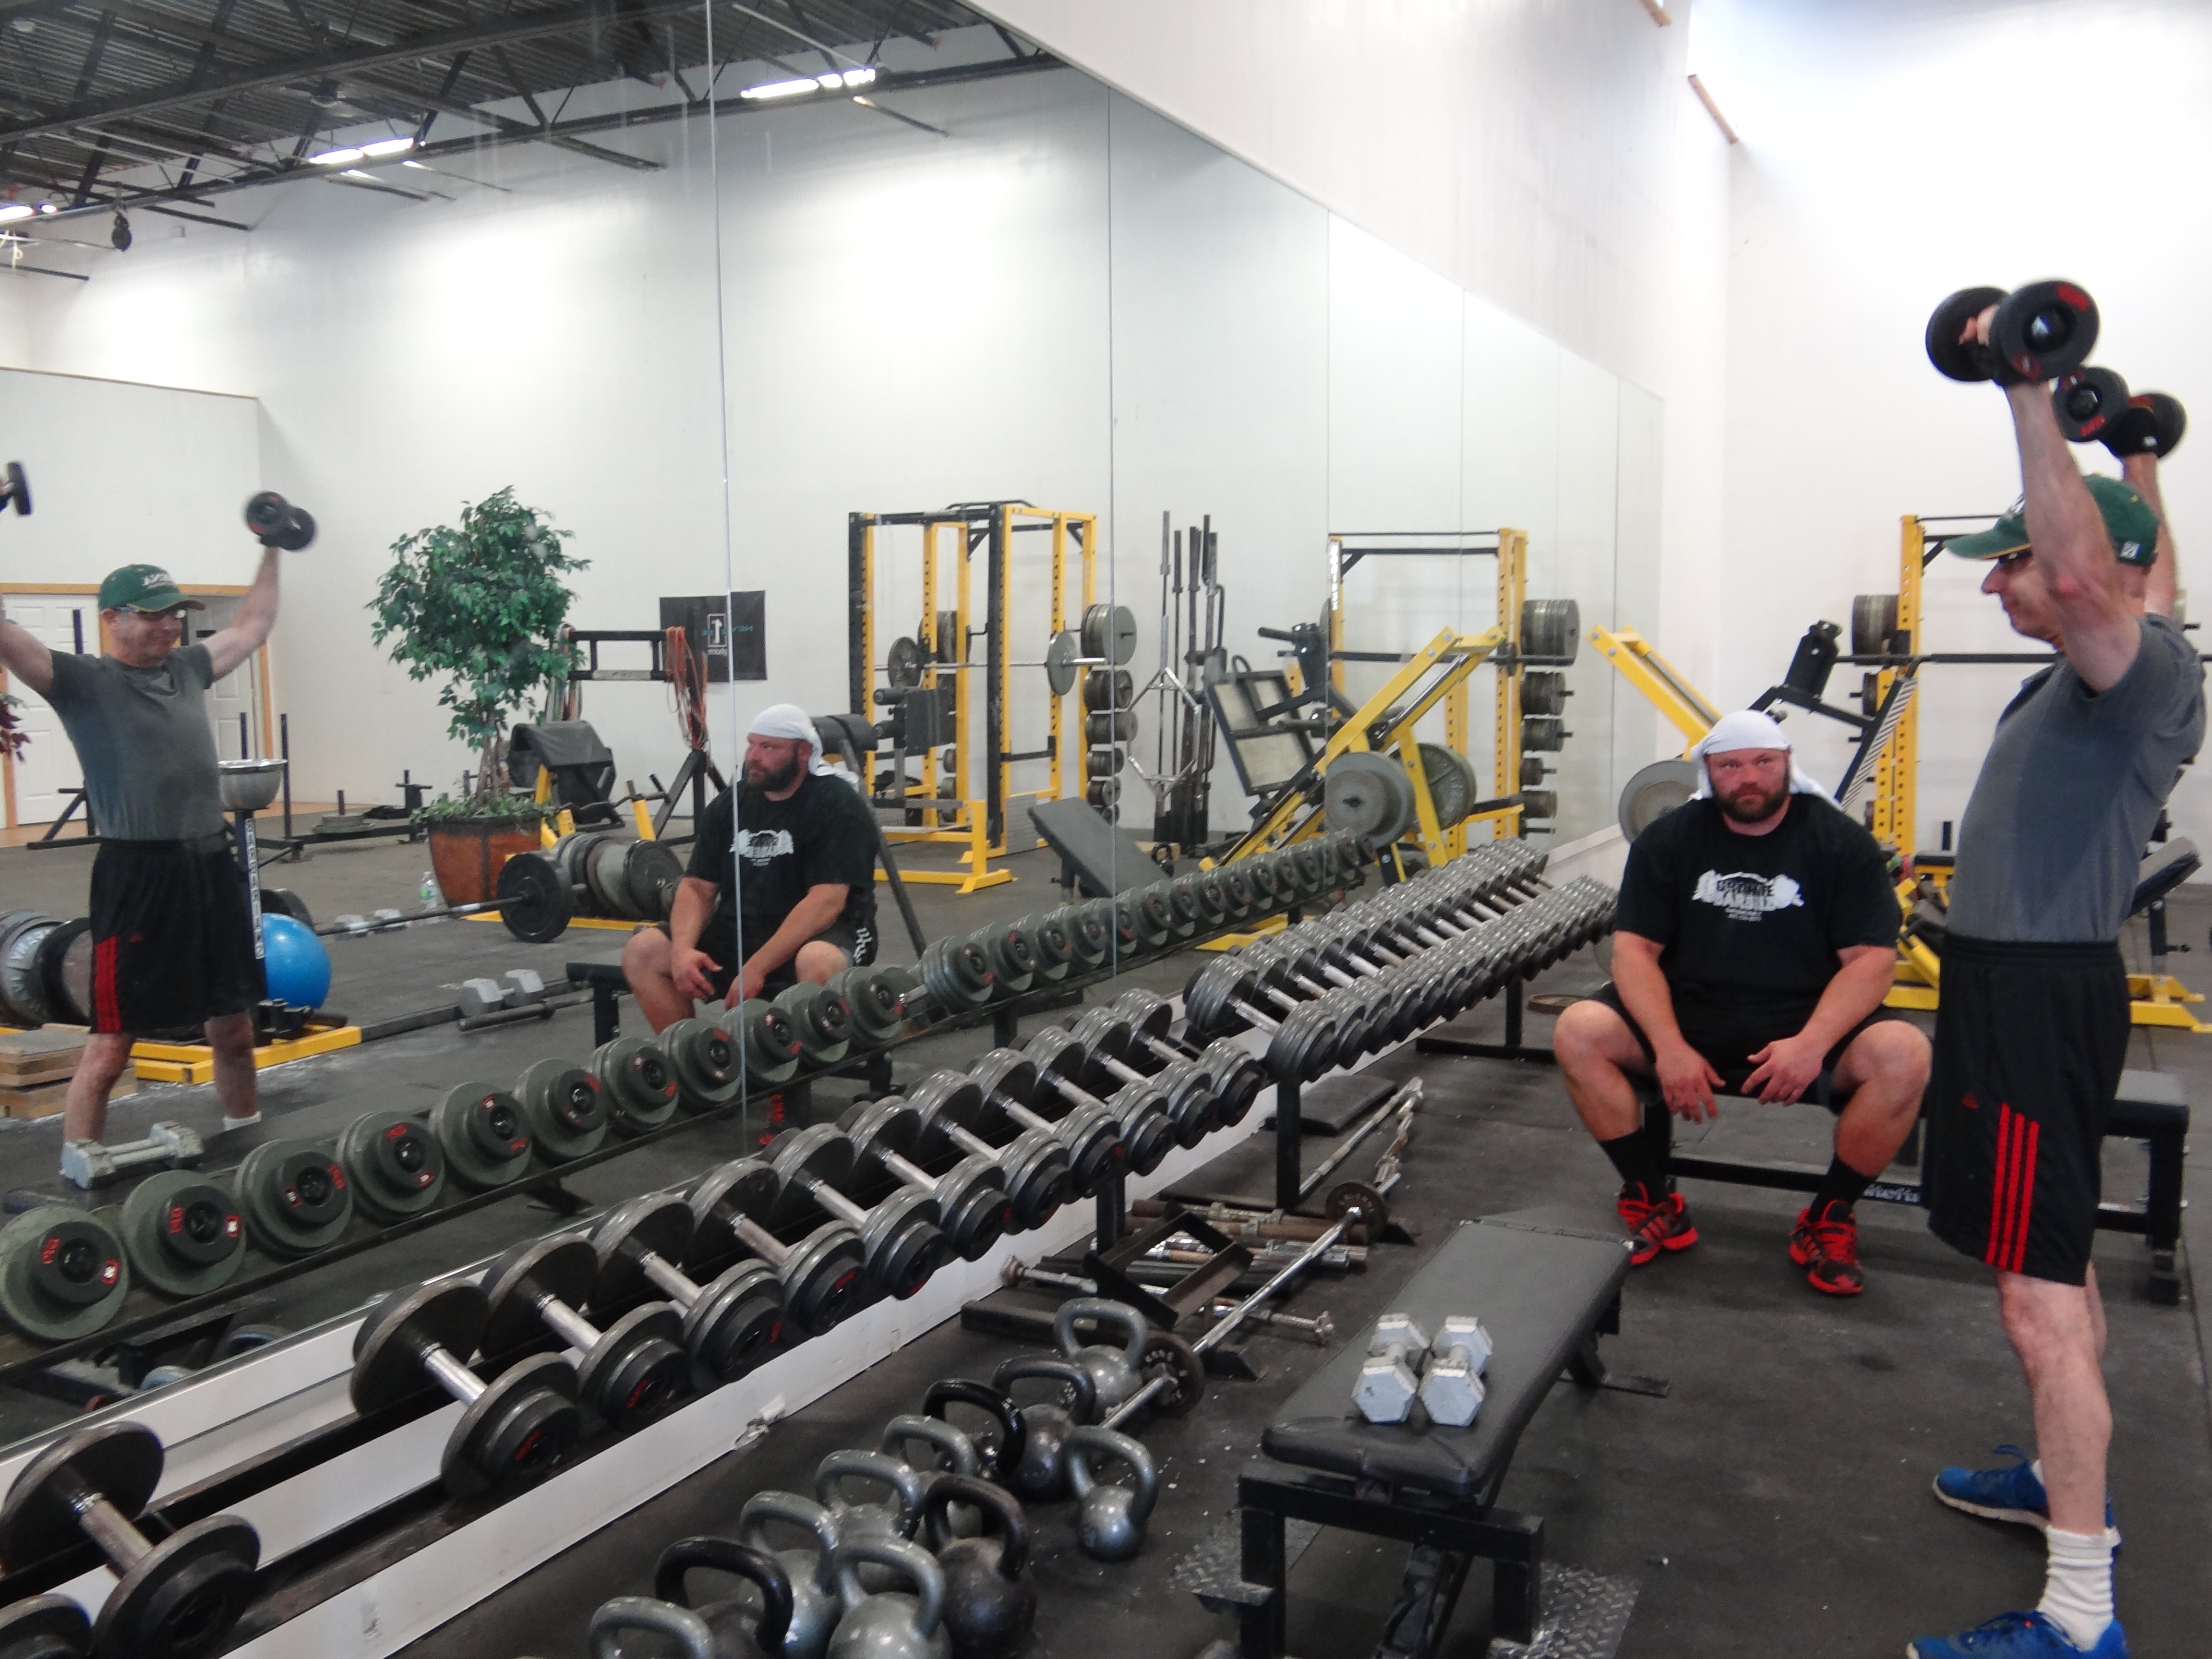 Granite Barbell has moved to new space in the same building located at 3020 Rte 207 #109, Campbell Hall, NY.